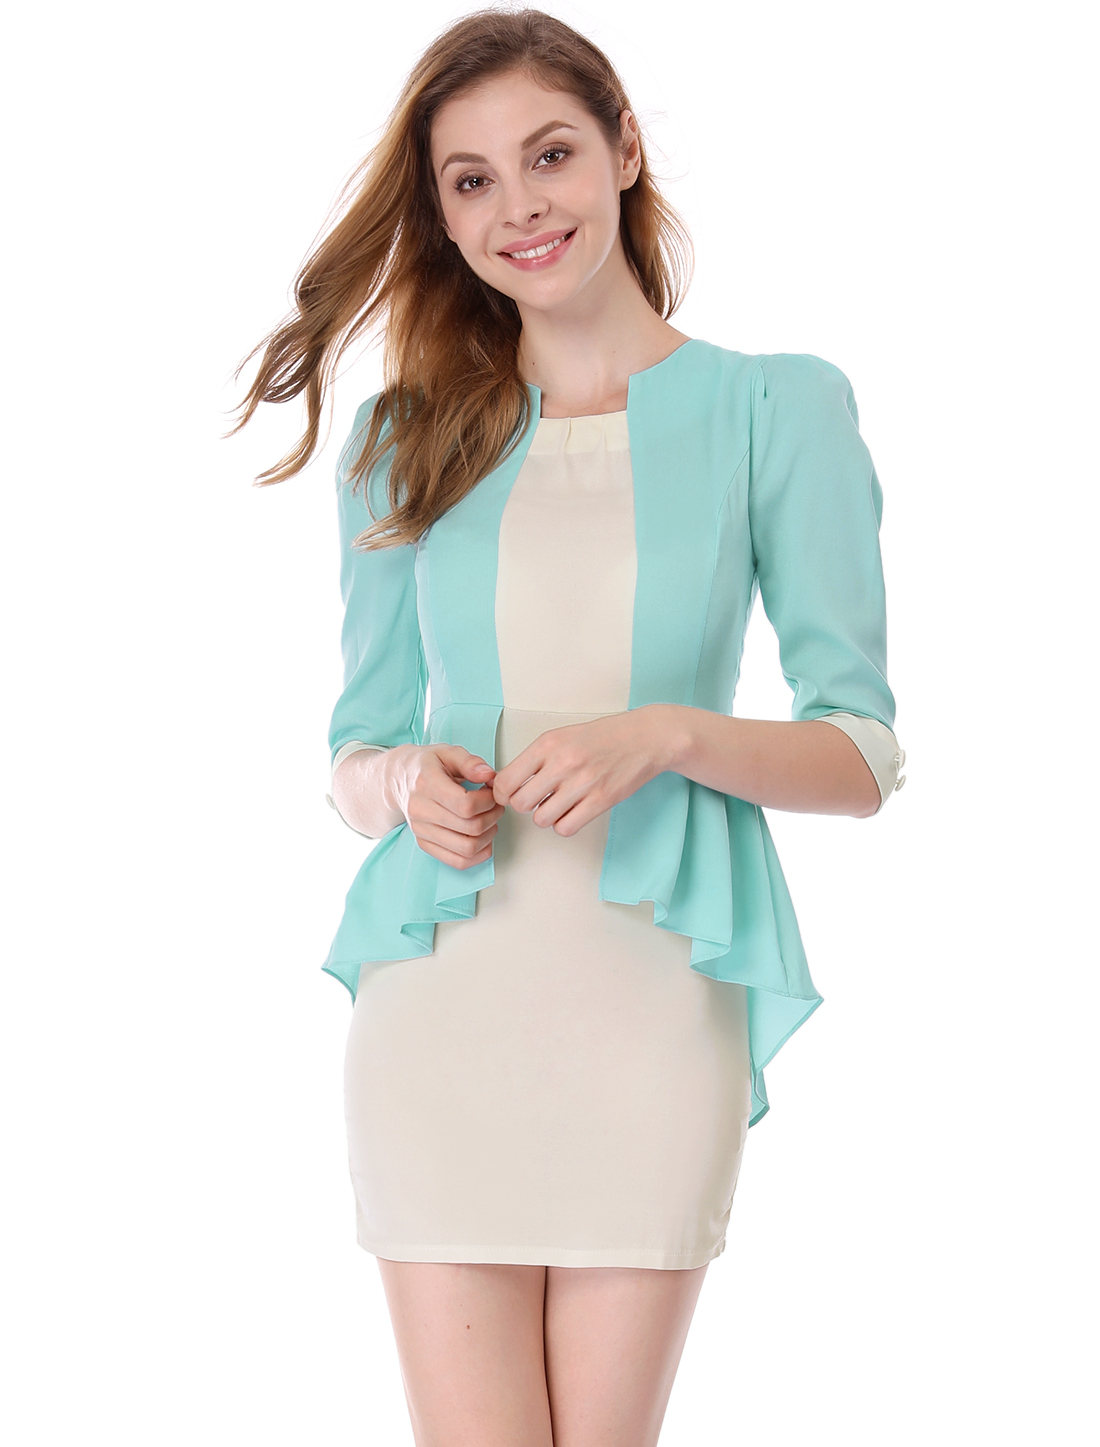 Ladies Round Neck 3/4 Sleeve Concealed Zipper Back Dress Mint XS